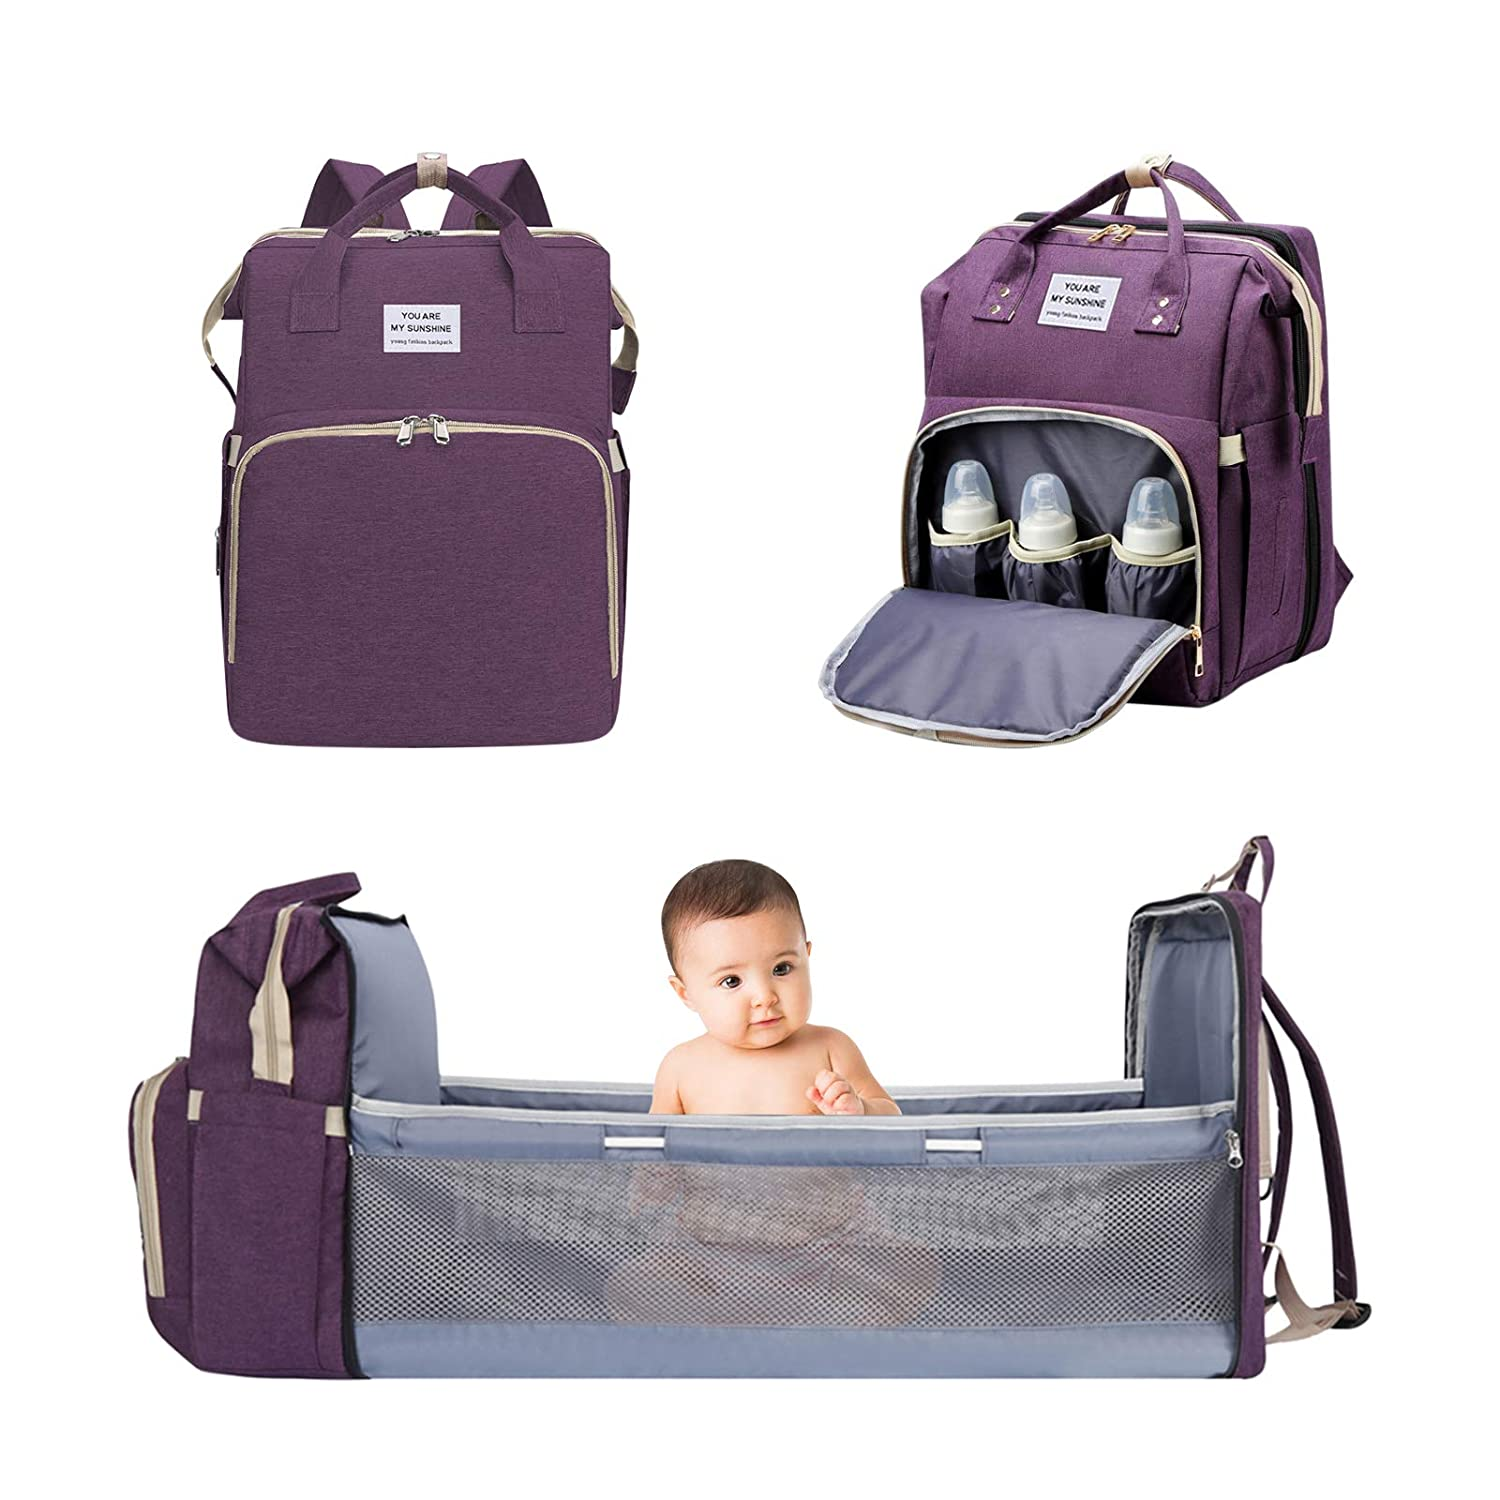 ituansenBaby Diaper Bag Backpack for Travel - Portable Nappy Bag with Changing Pad & Stroller Straps, Foldable Baby Bed Travel Bassinet, Waterproof Newborn Diaper Bag Tote(Lavender)